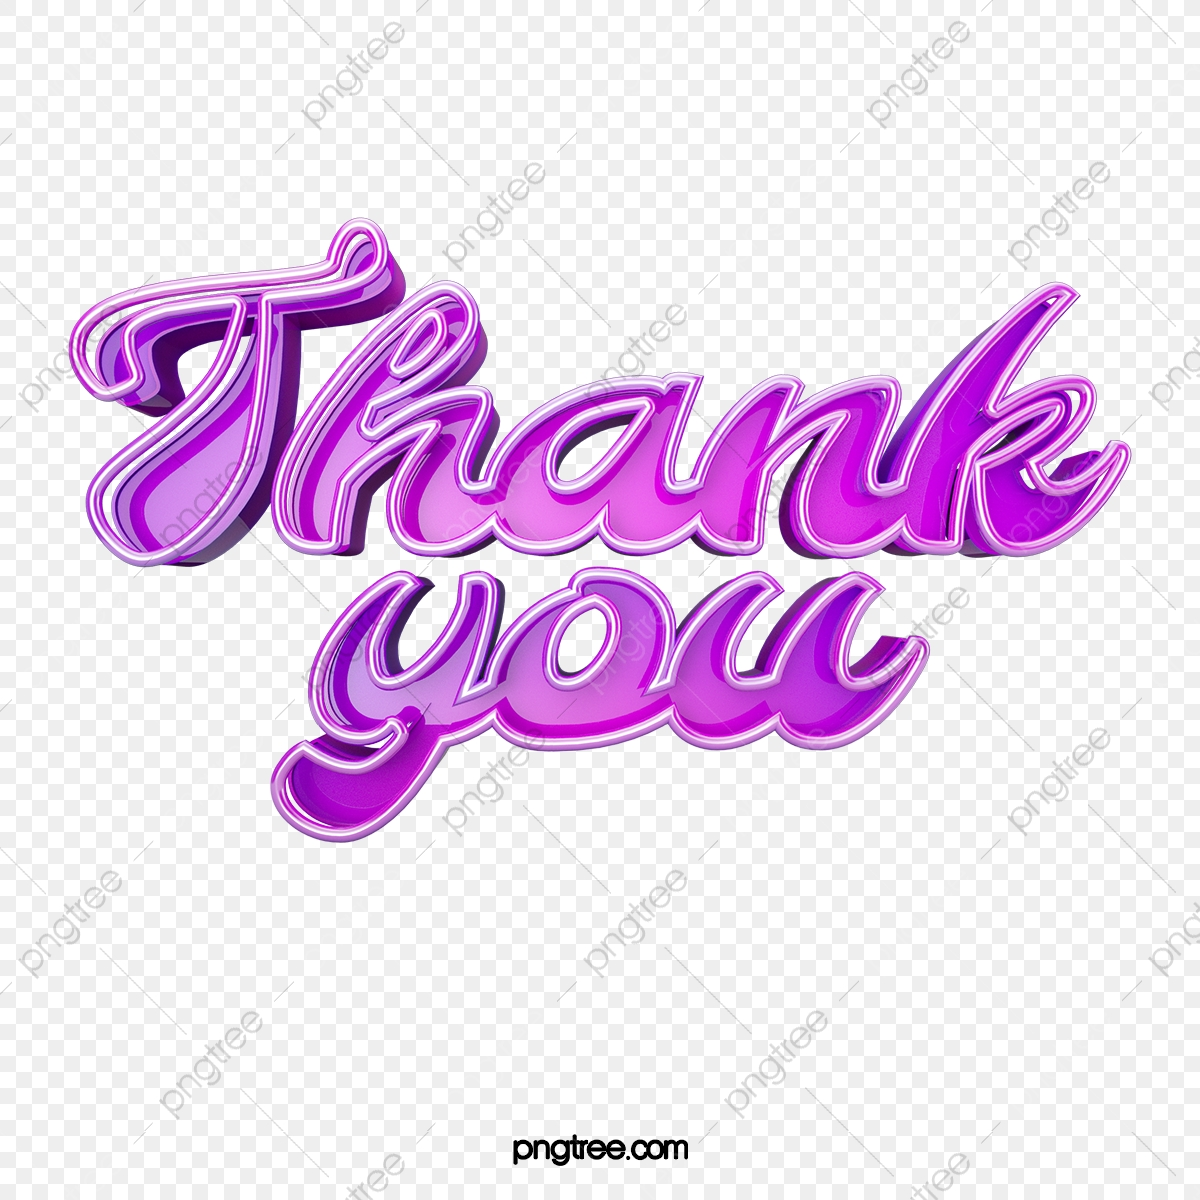 Thank You Kids Clip Art   Clipart Panda - Free Clipart Images   Thank you  messages for birthday, Thank you volunteers, Thank you images